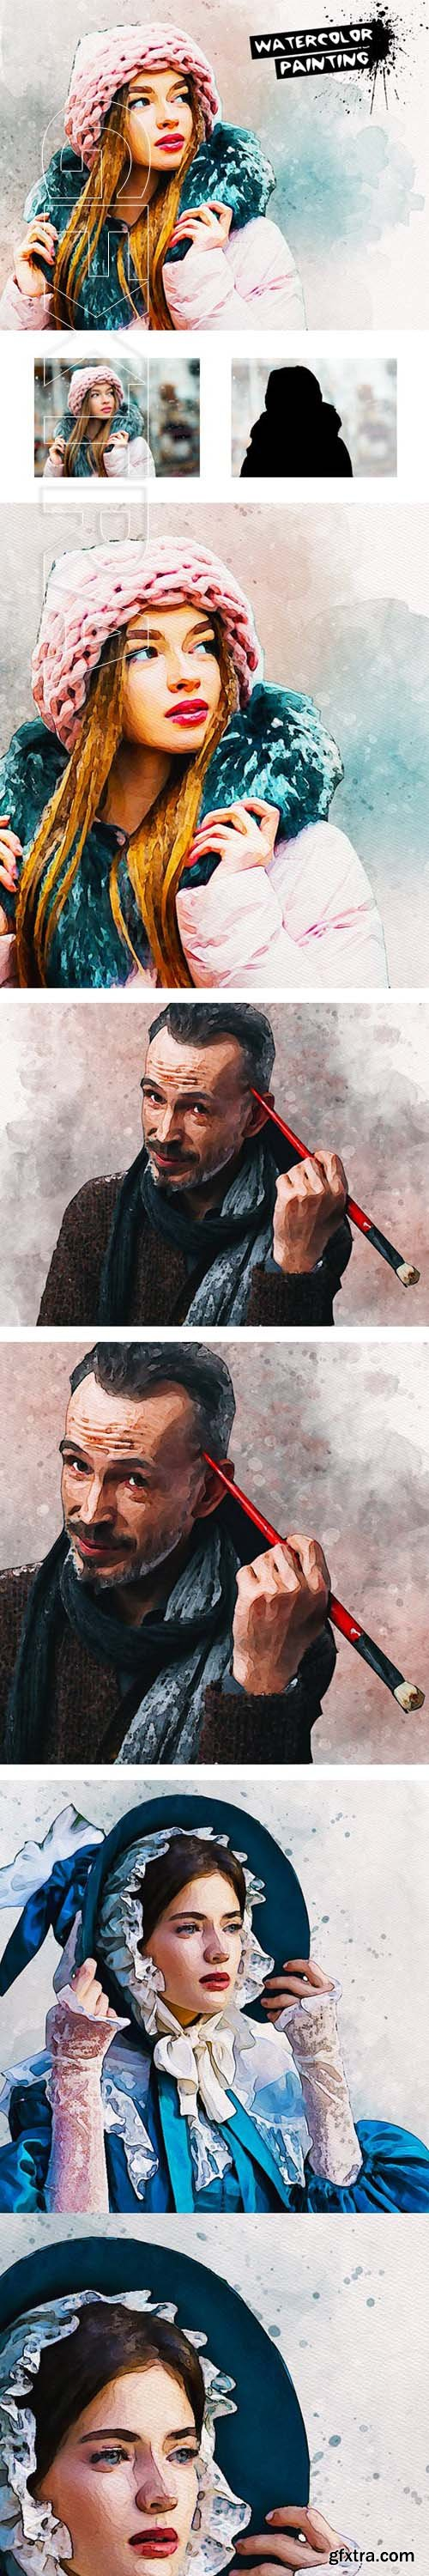 GraphicRiver - Watercolor Painting PS Action 23671910